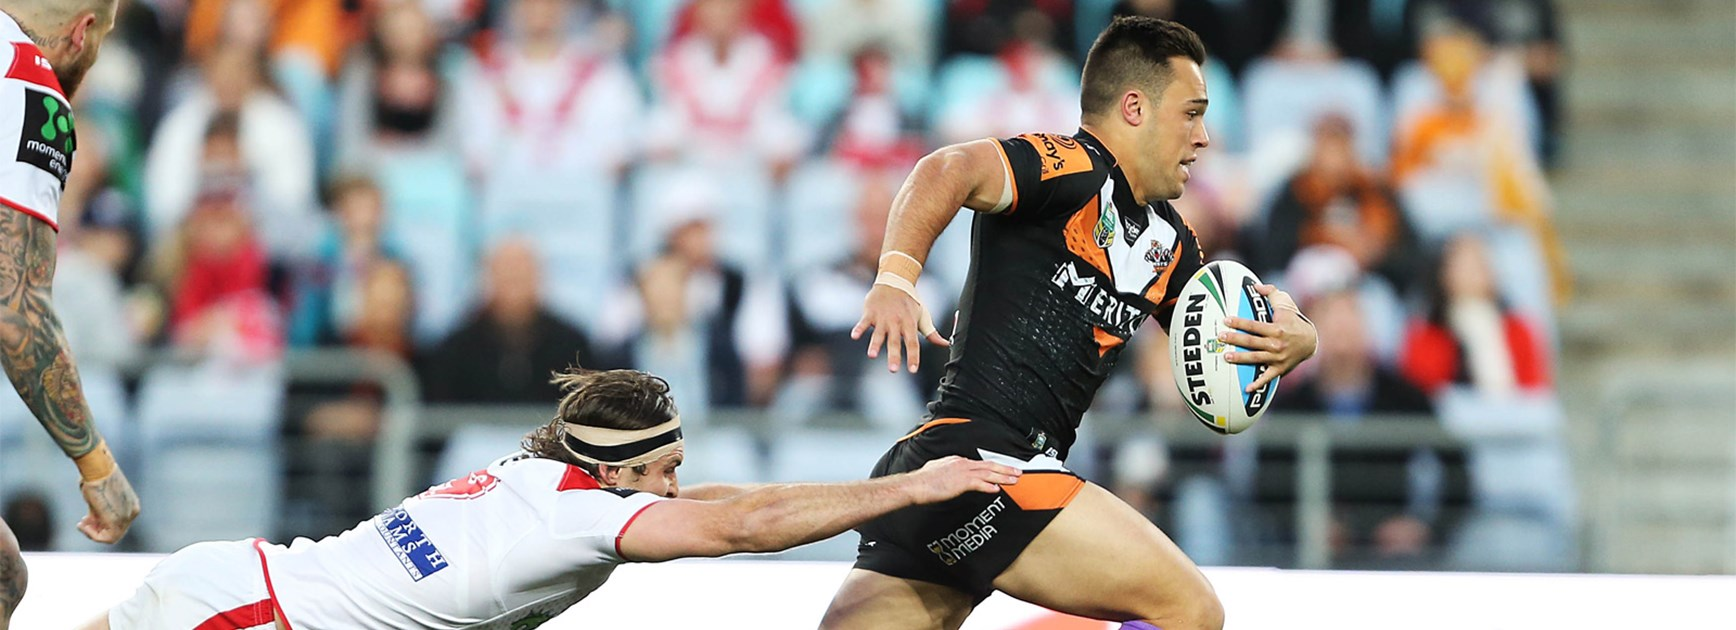 Luke Brooks scored an early intercept try against the Dragons on Saturday.